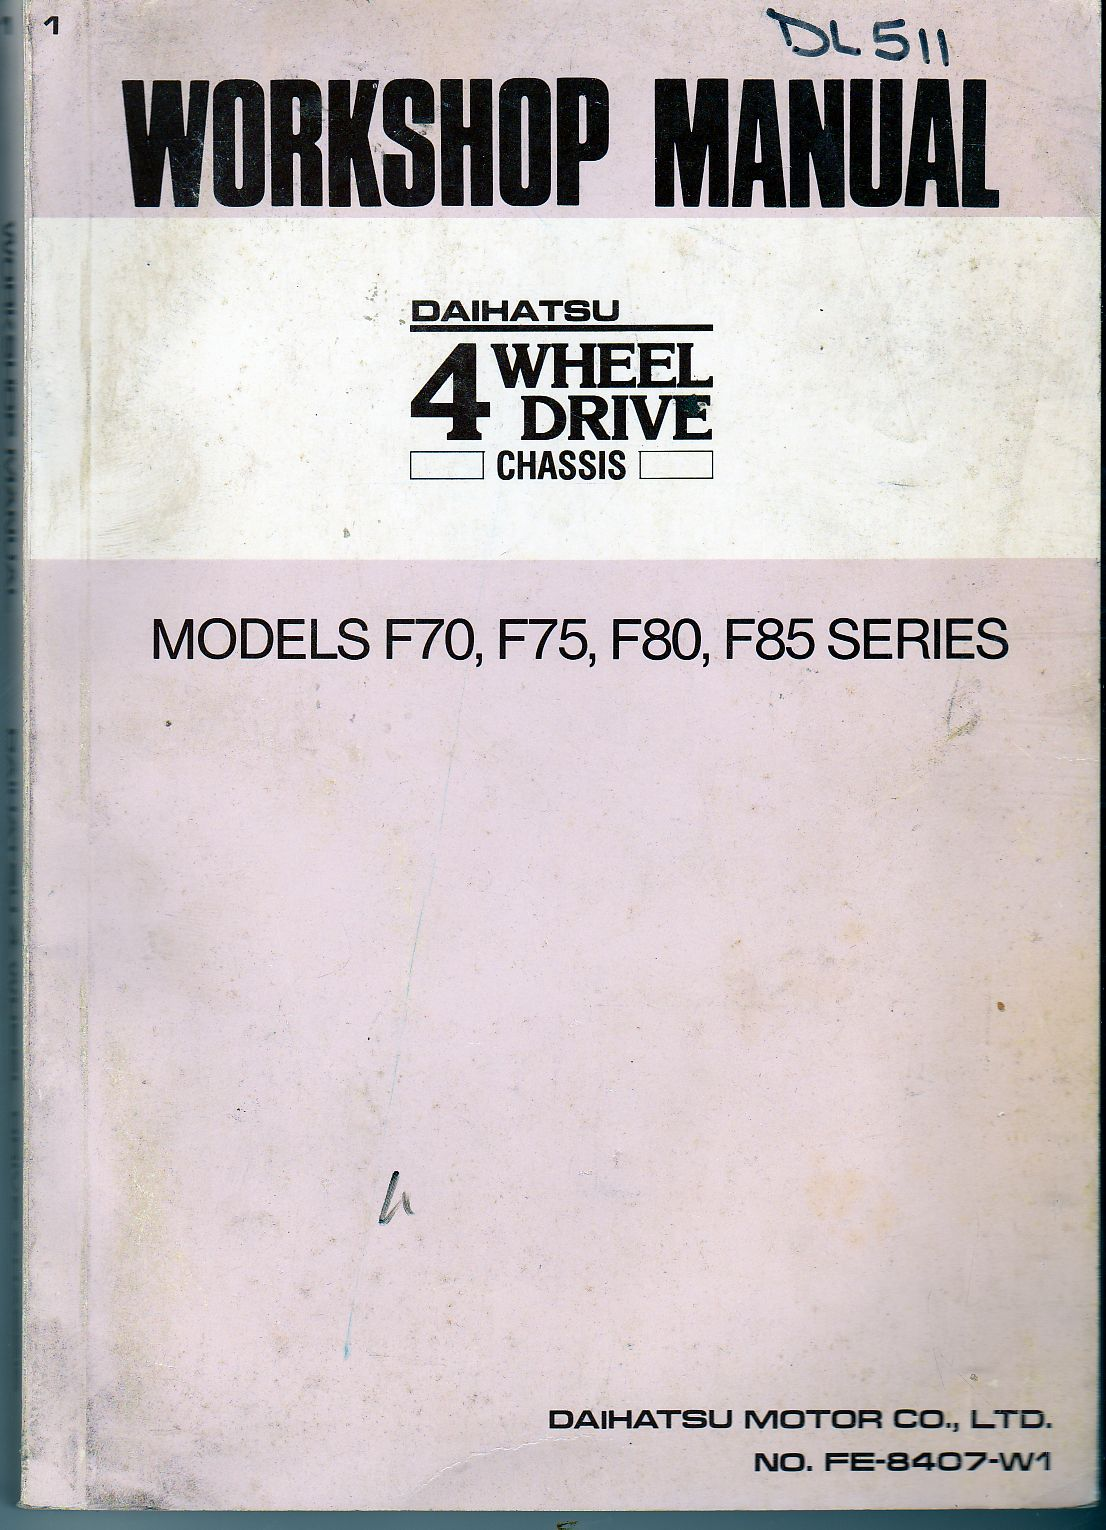 Daihatsu F70, F75, F80 F85 Shop Manual FE-8407-W1